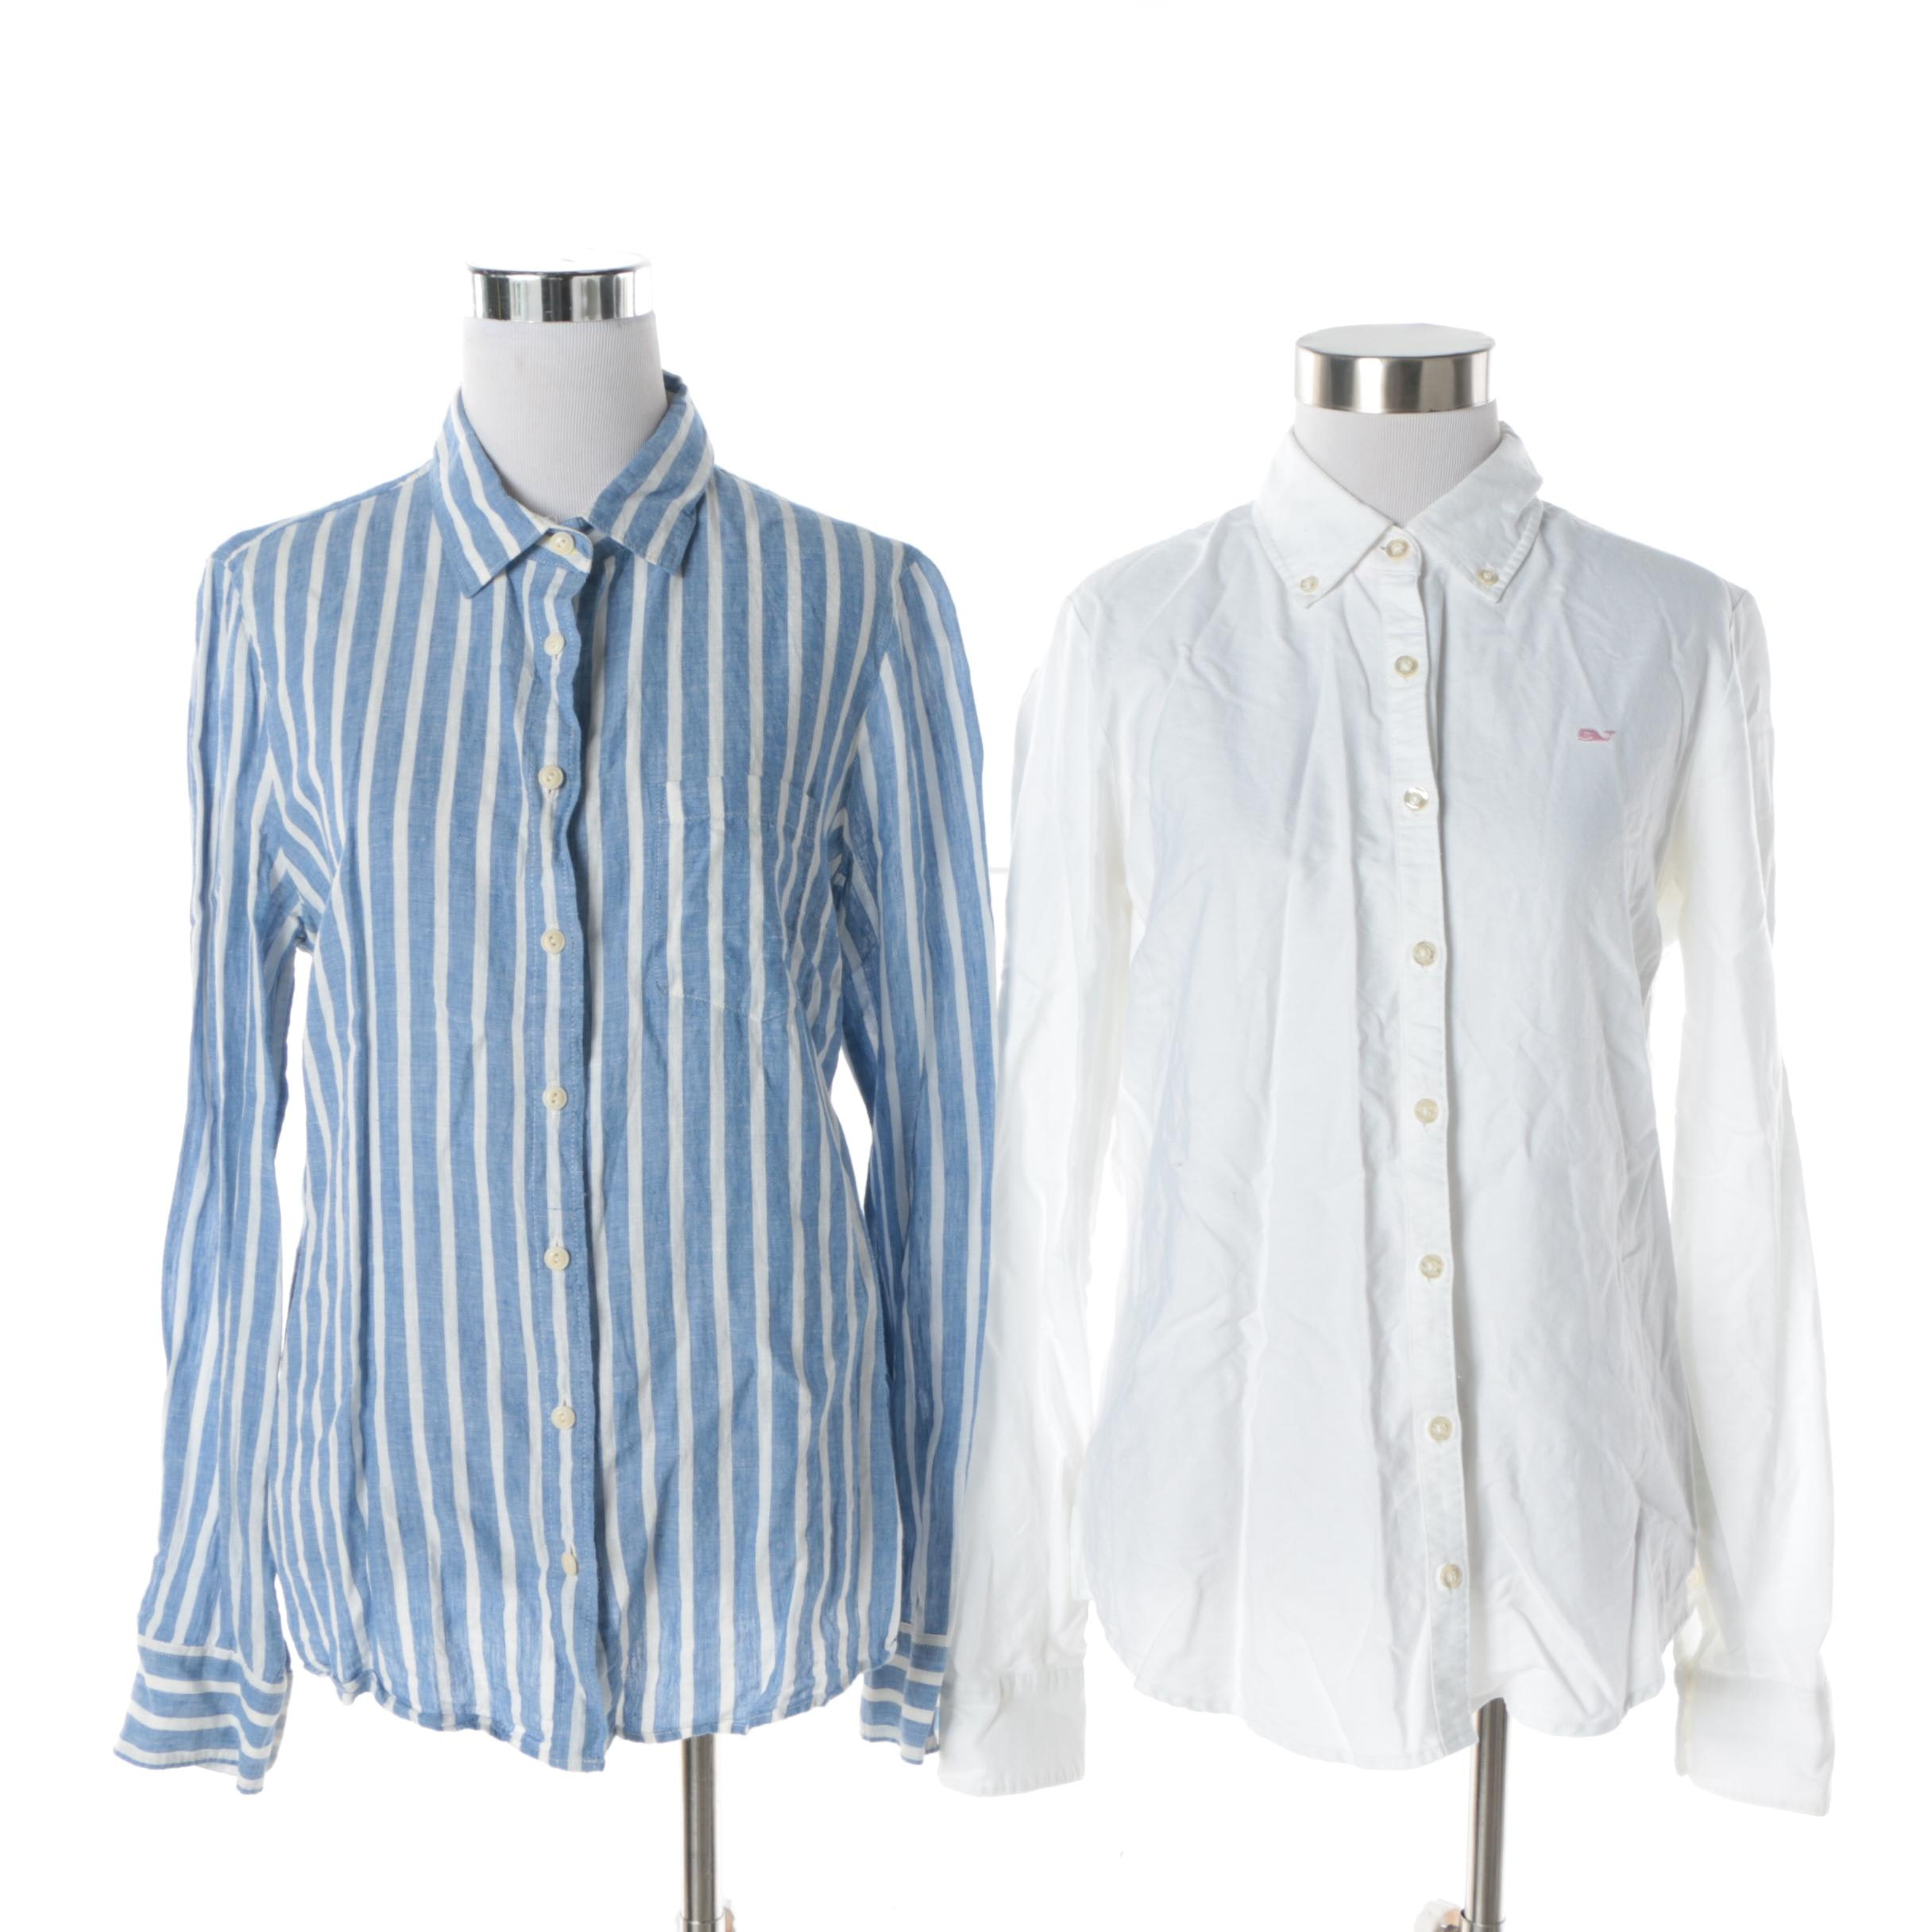 Women's J. Crew Striped Linen Blend and Vineyard Vines White Cotton Button-Downs